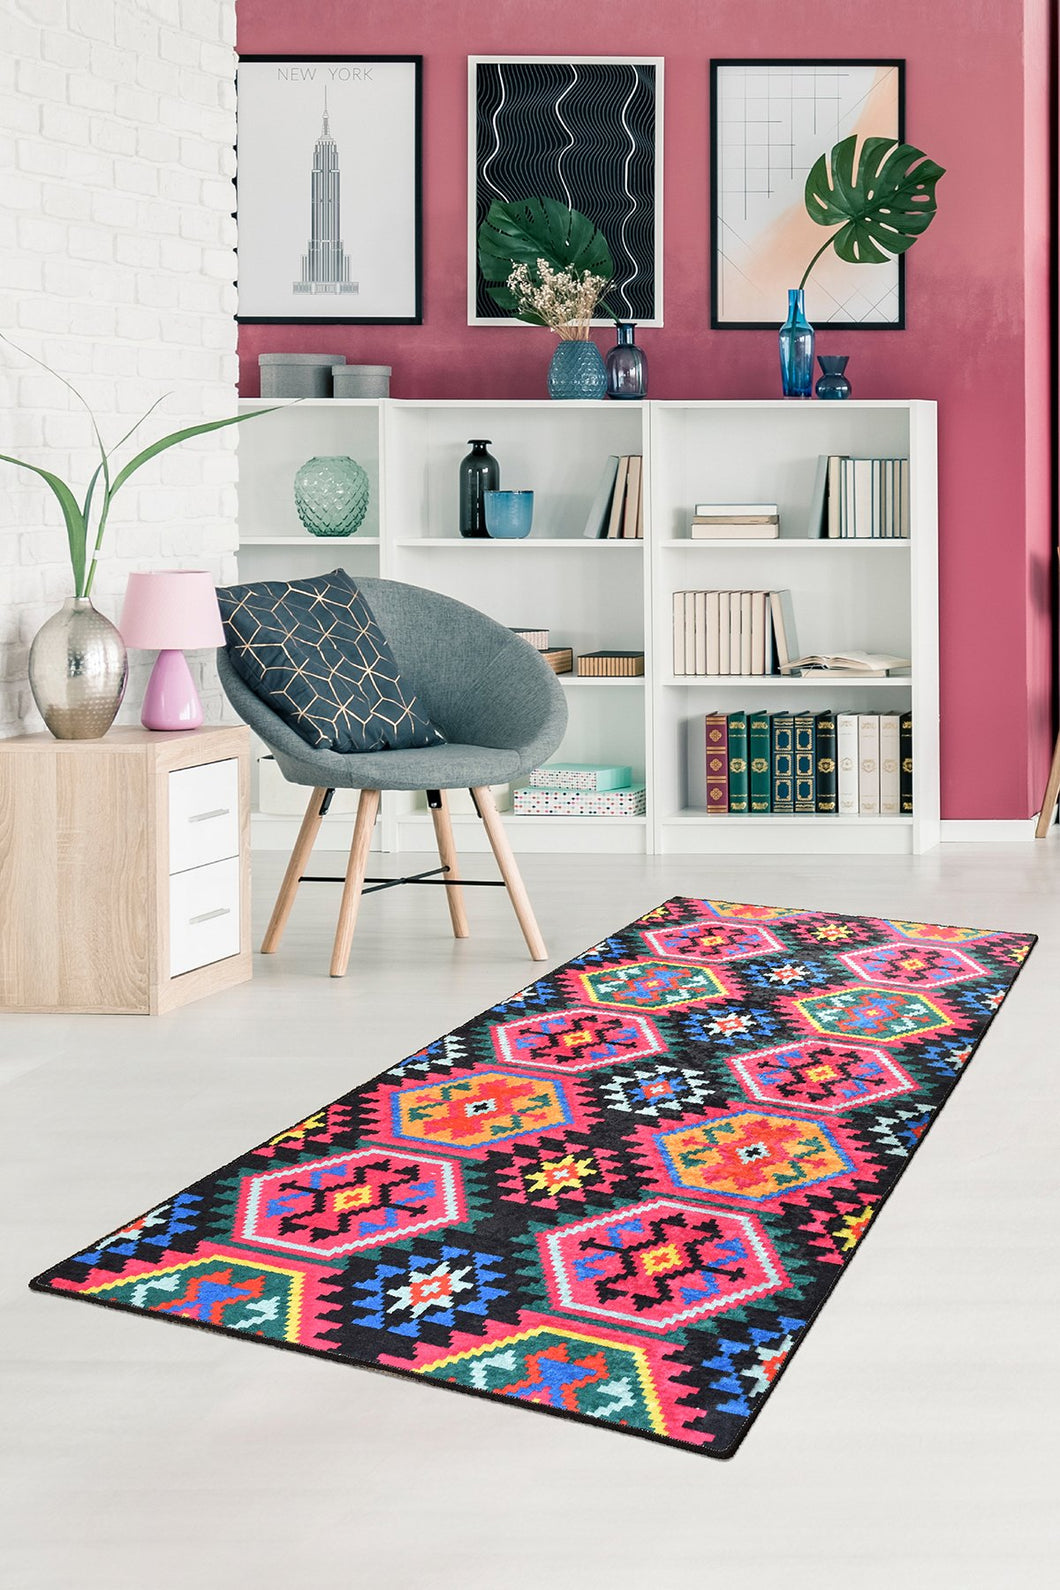 Antdecor Ethnic Design Multicolor Zig Zag Decorative Area Rug 31'' 59'' 80x150cm